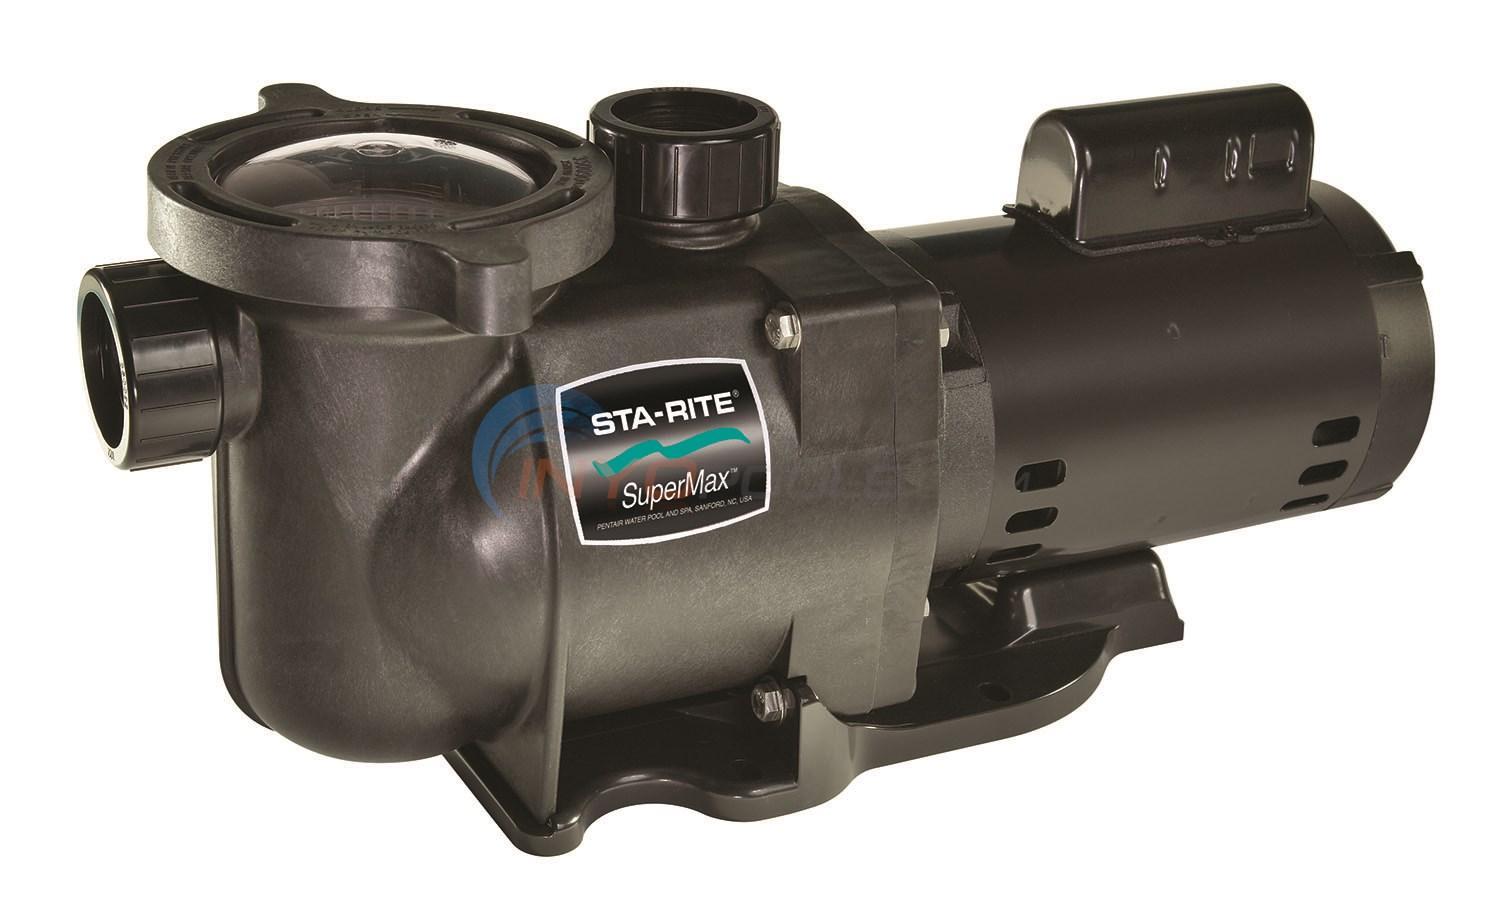 Sta-Rite Super Max 1.5 HP 2 Speed Pump - PHK2RAY6F103L